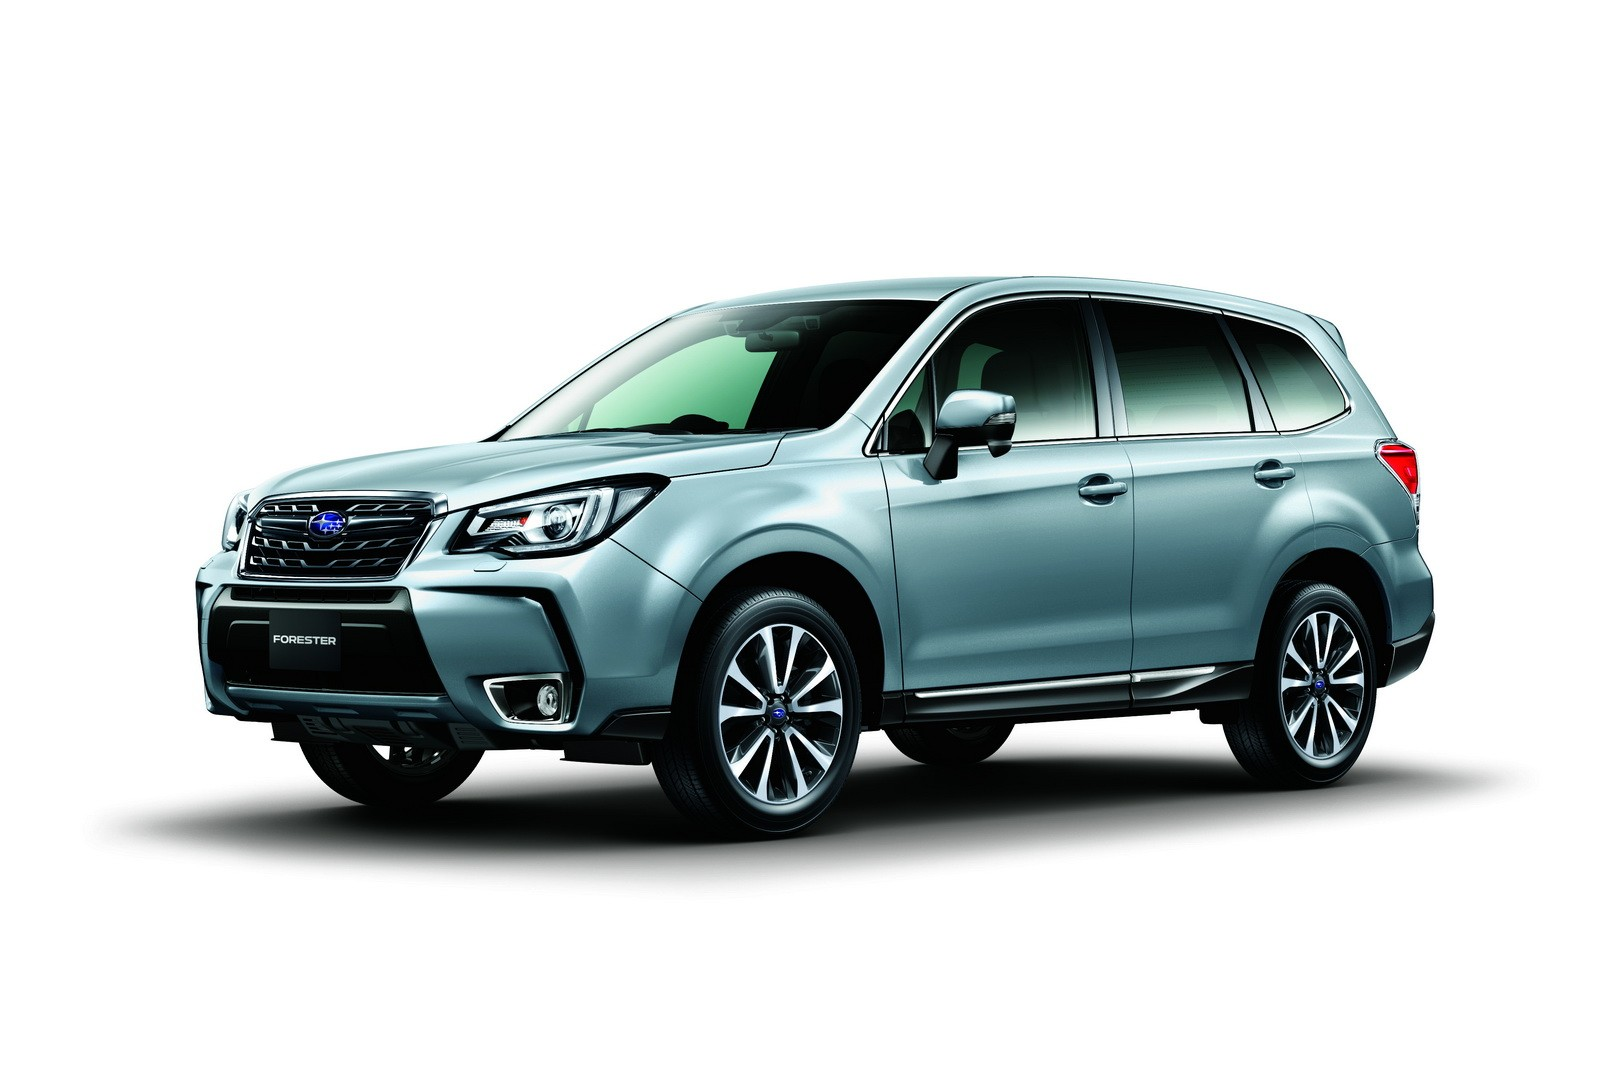 2017 subaru forester facelift revealed ahead of tokyo motor show debut autoevolution. Black Bedroom Furniture Sets. Home Design Ideas